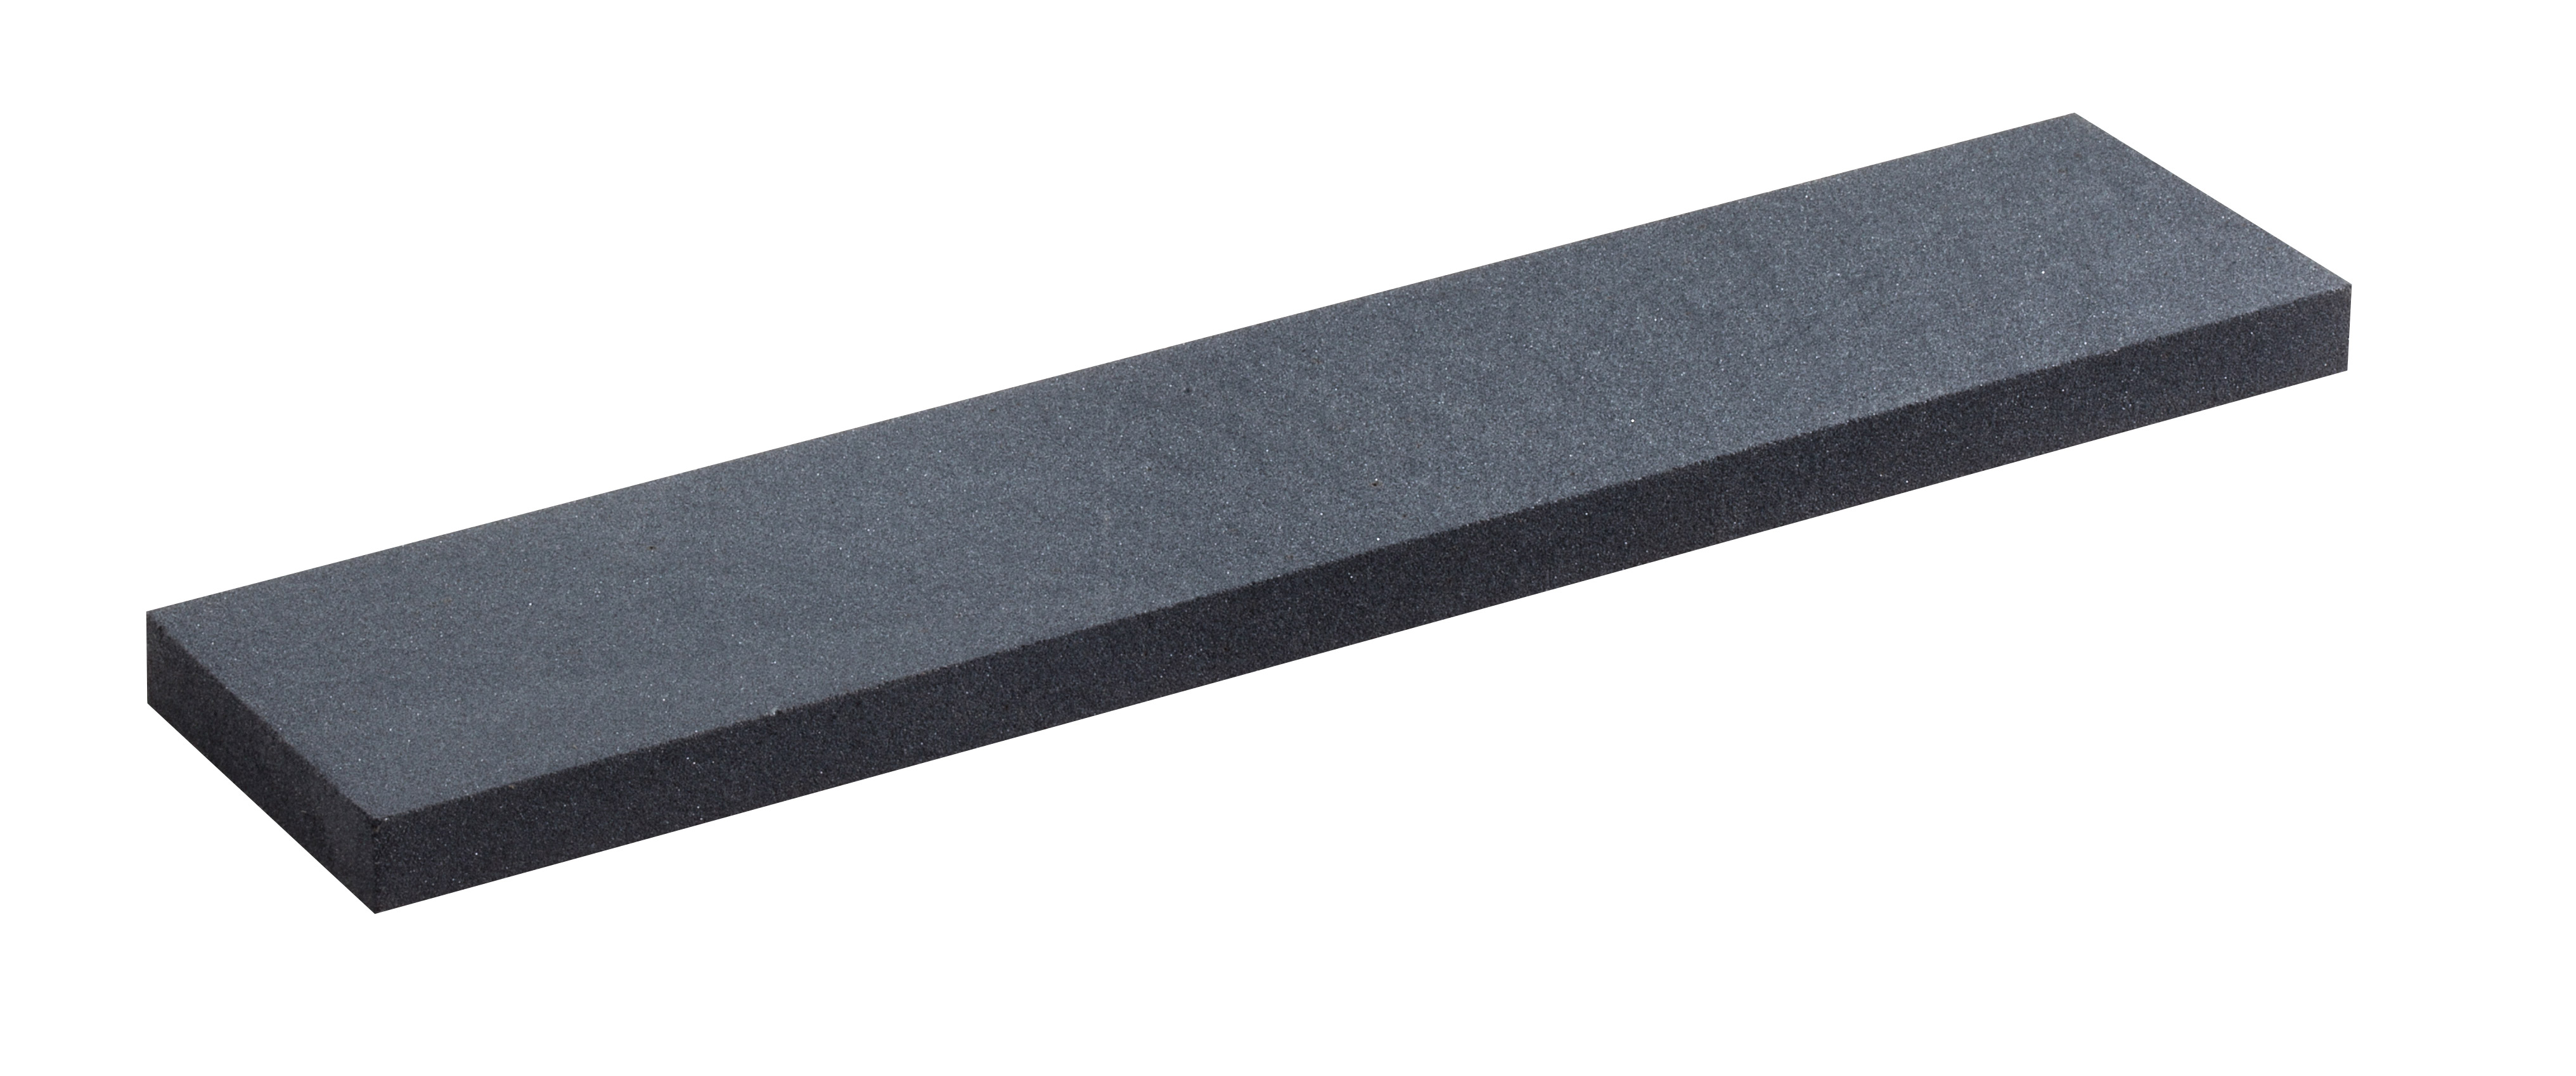 Mercer Culinary M15932 knife, sharpening stone